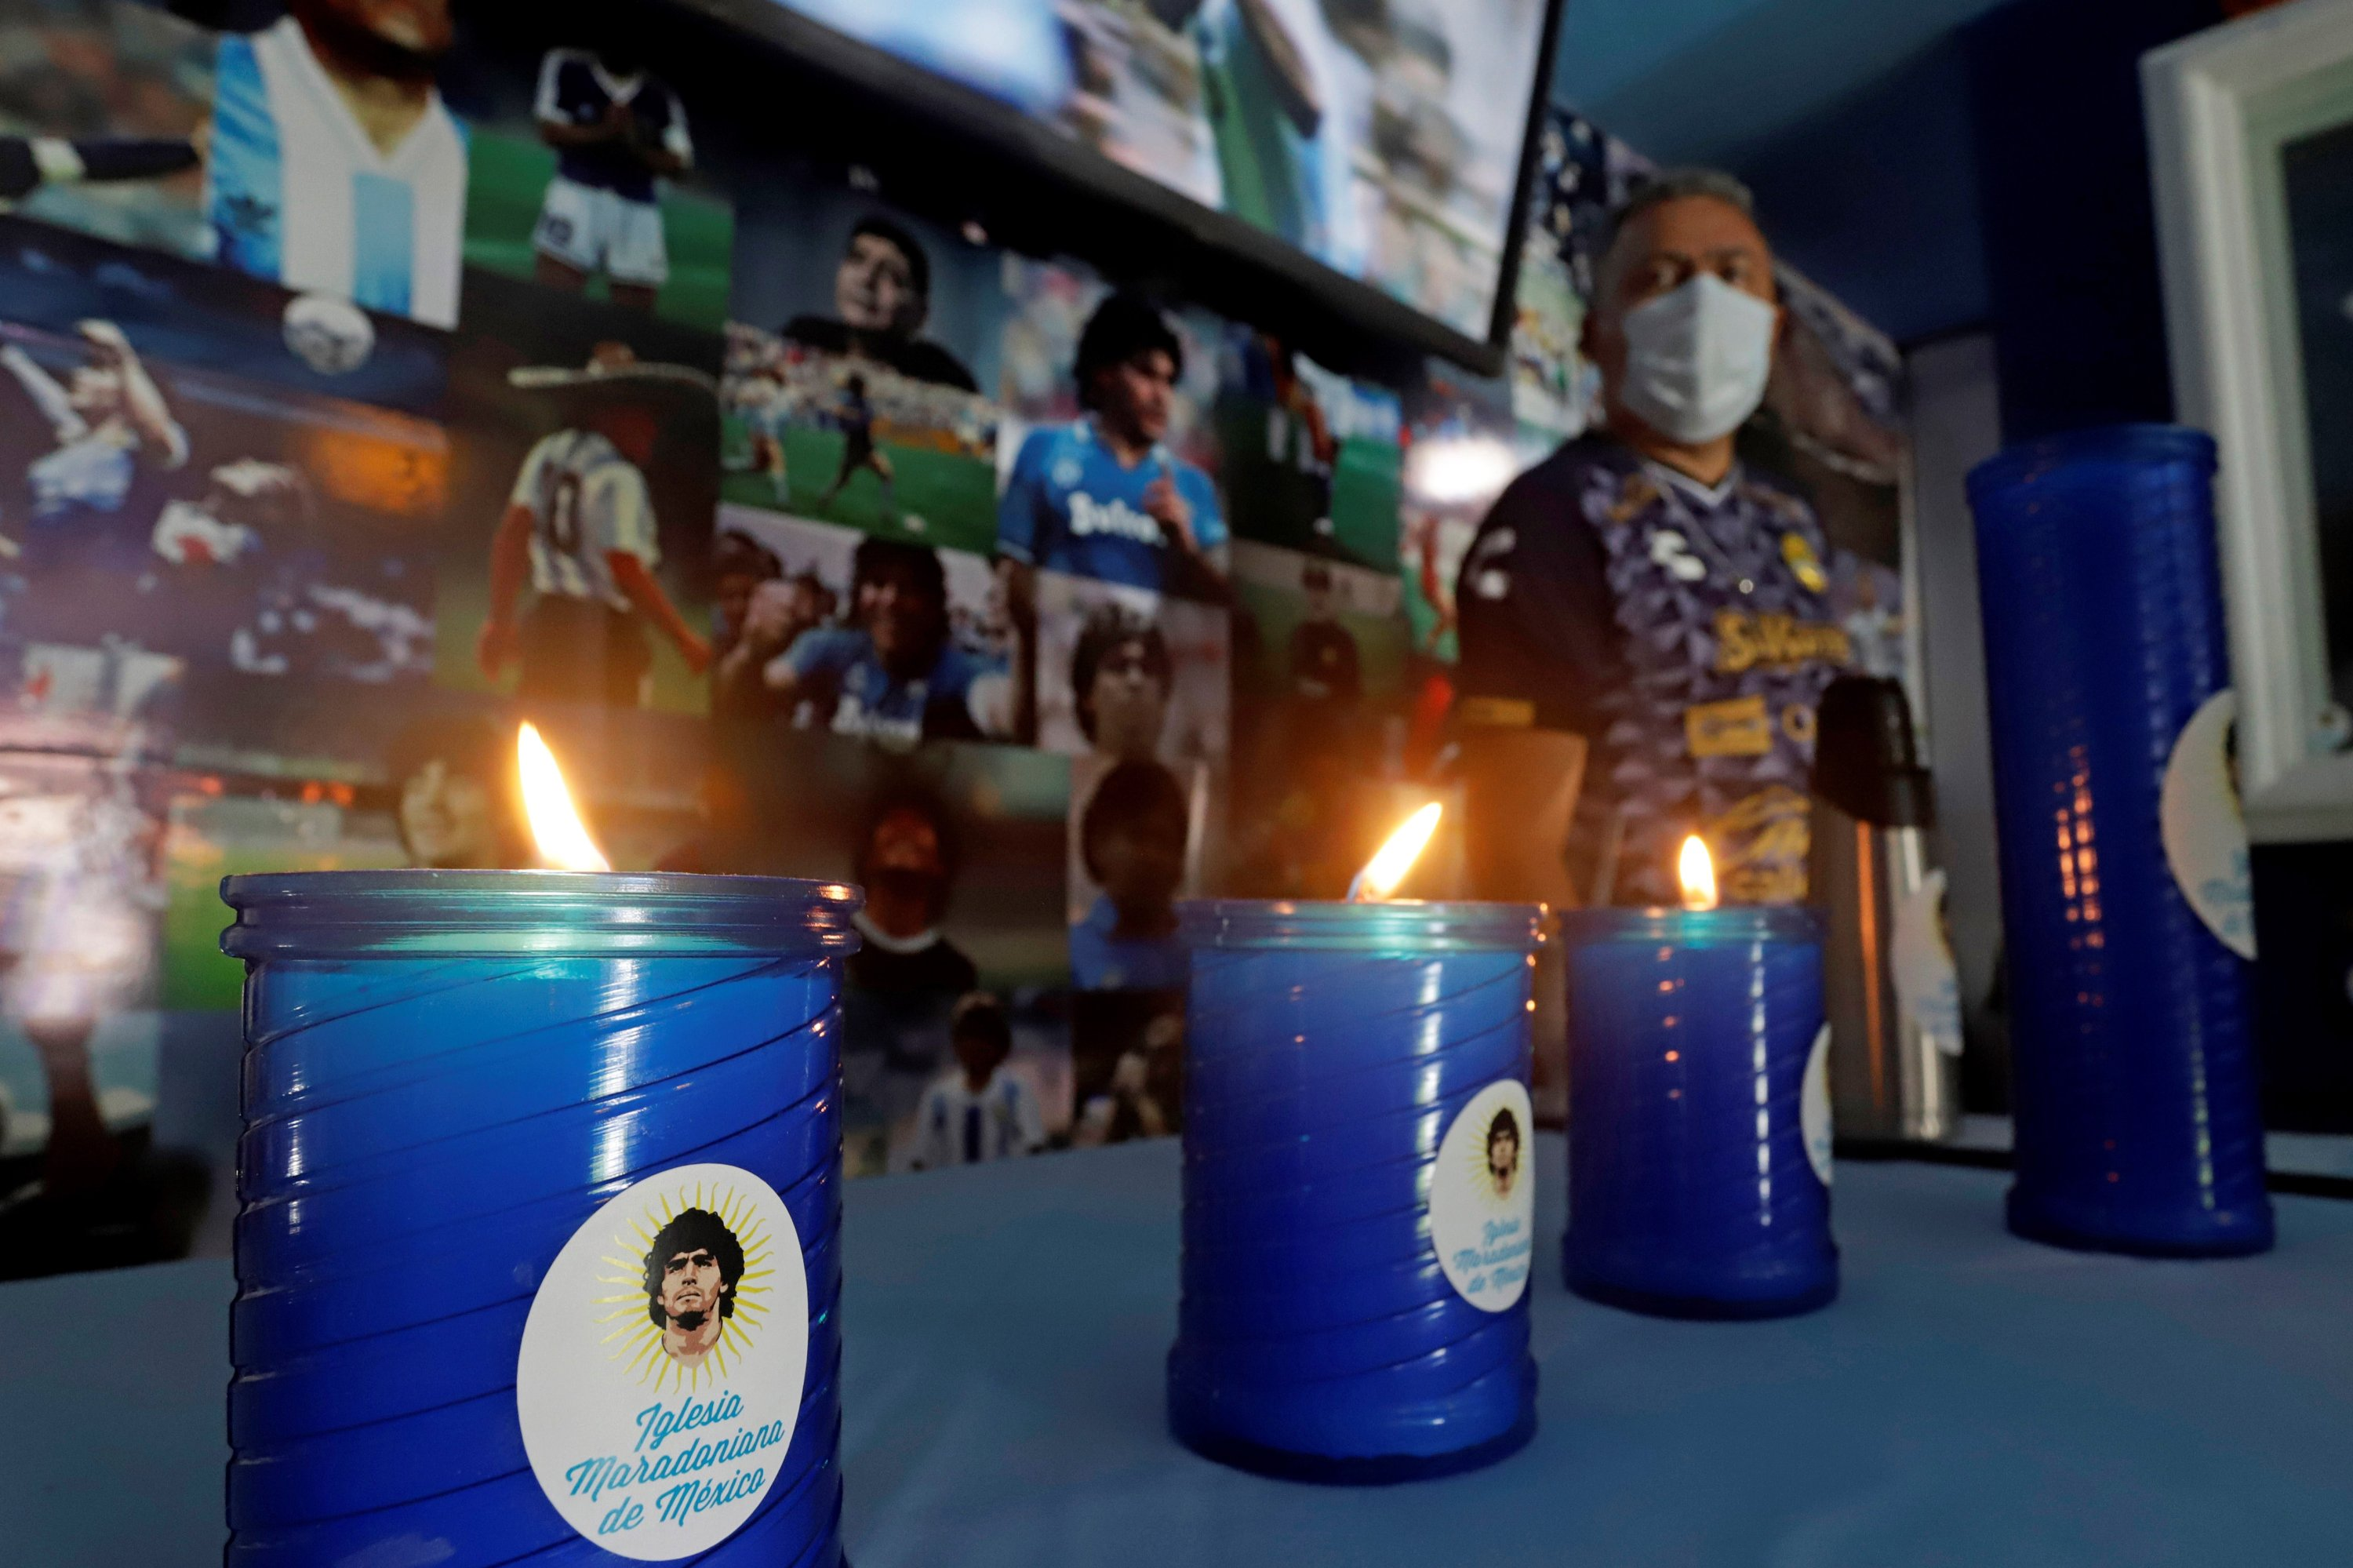 Candles with the photograph of Diego Maradona, in the municipality of San Andres Cholula, in Puebla, Mexico, July 07, 2021. (EPA Photo)